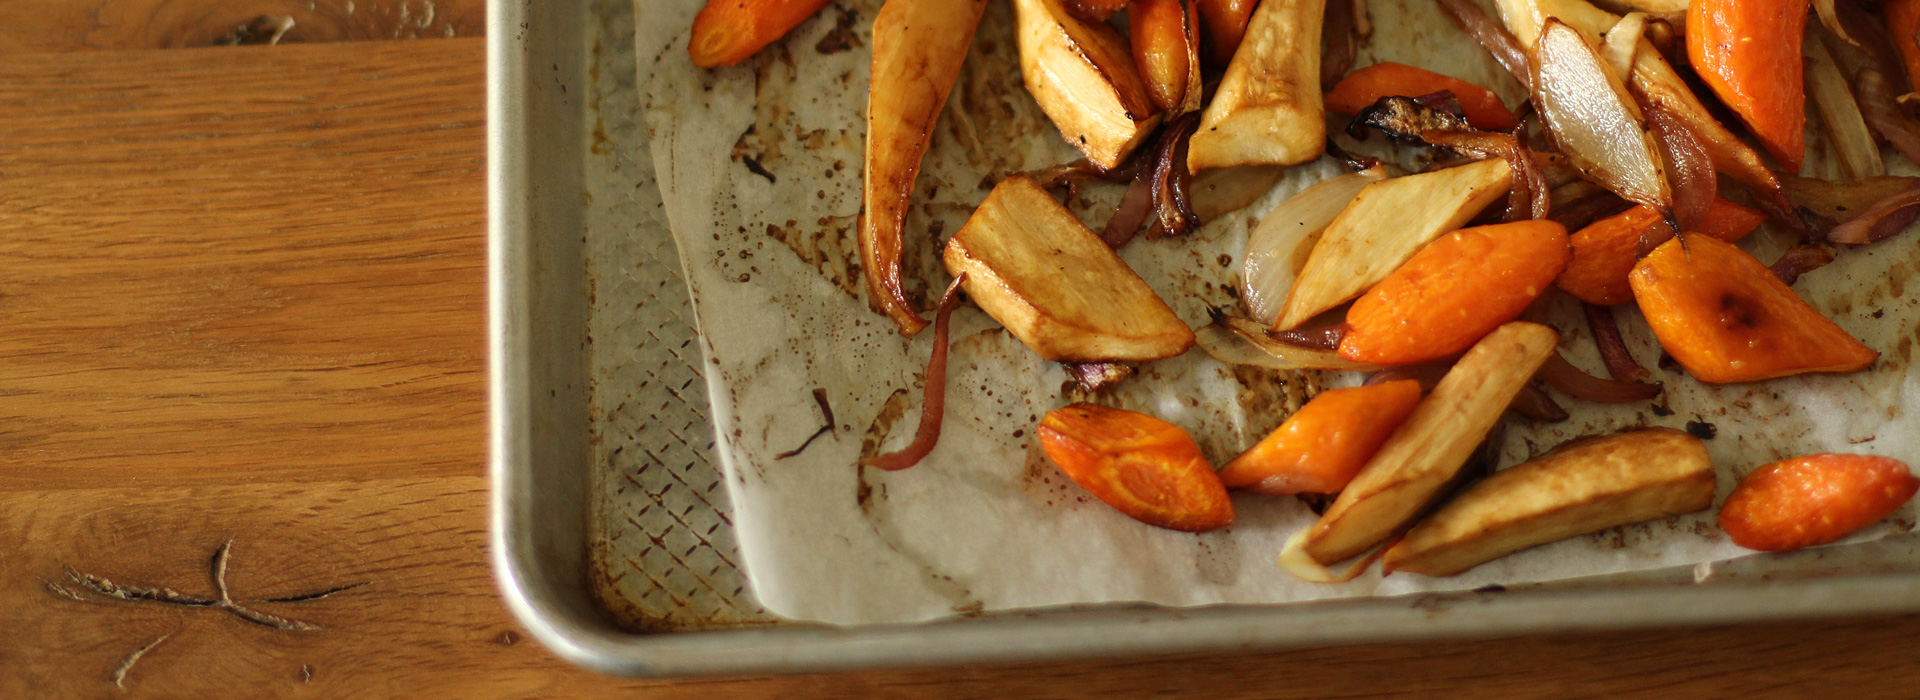 <p>The caramel sweetness and color of Prune Juice Concentratemakes it resemble balsamic vinegar. When used with red wine vinegar, the result tastes like aged balsamic vinegar from Italy. Here, the concentrate forms a caramelized glaze for root vegetables.</p>